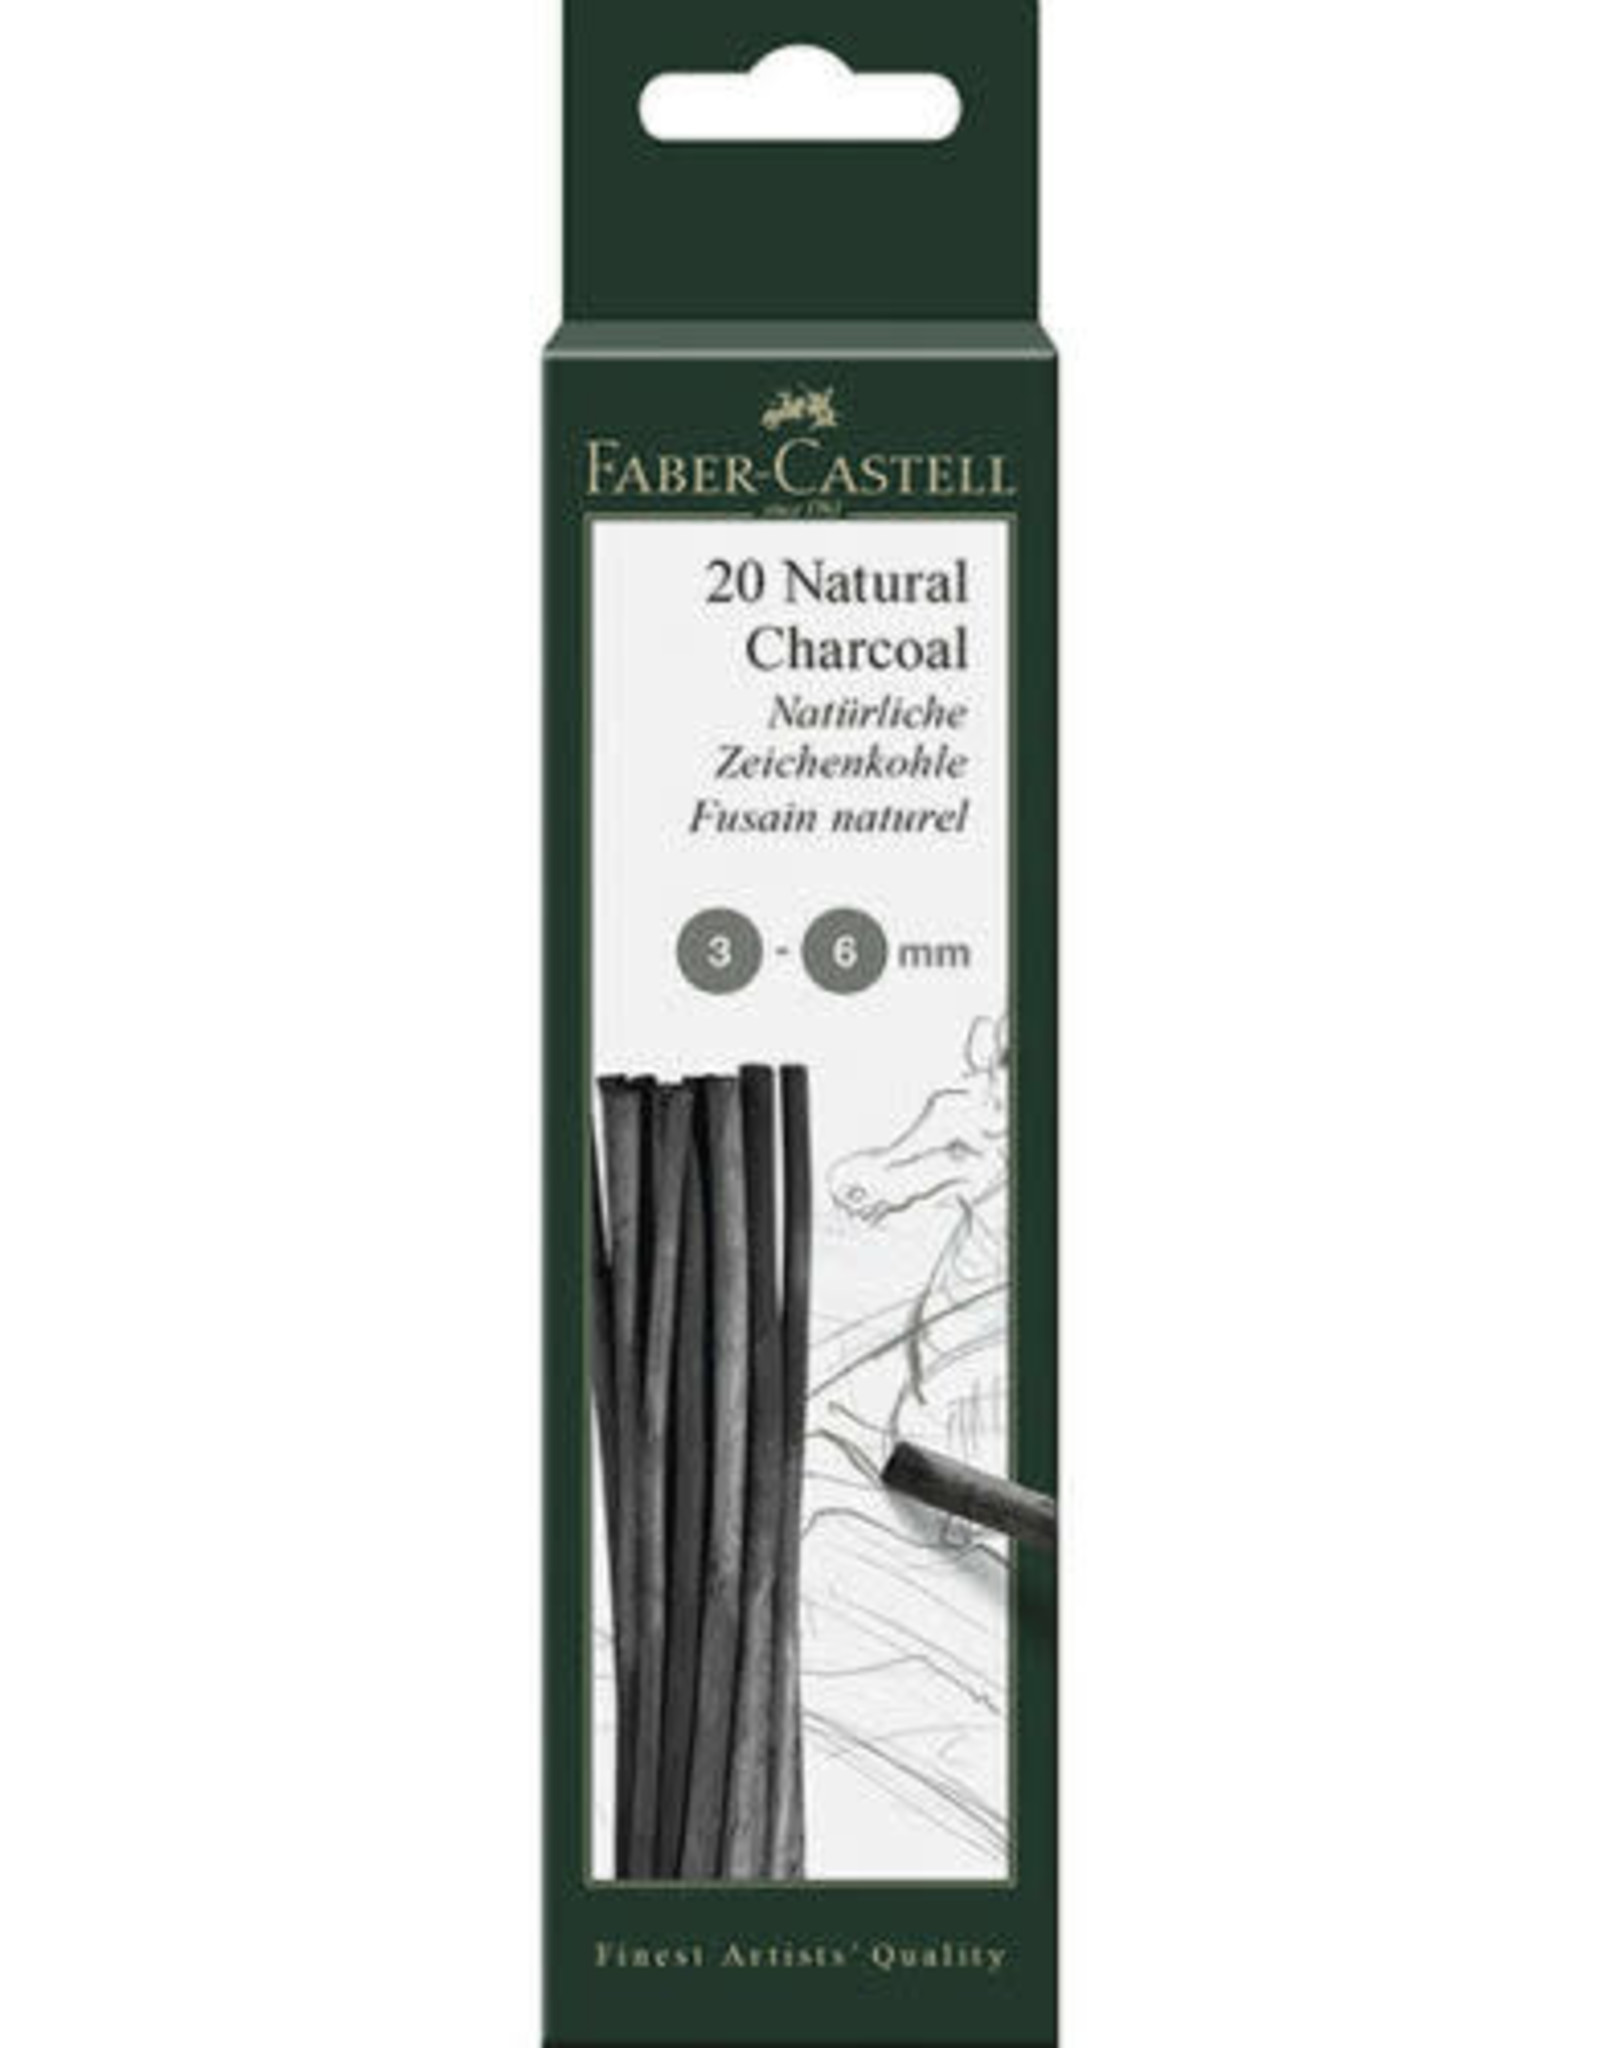 FABER-CASTELL Faber-Castell 20 Natural Charcoal 3-6mm